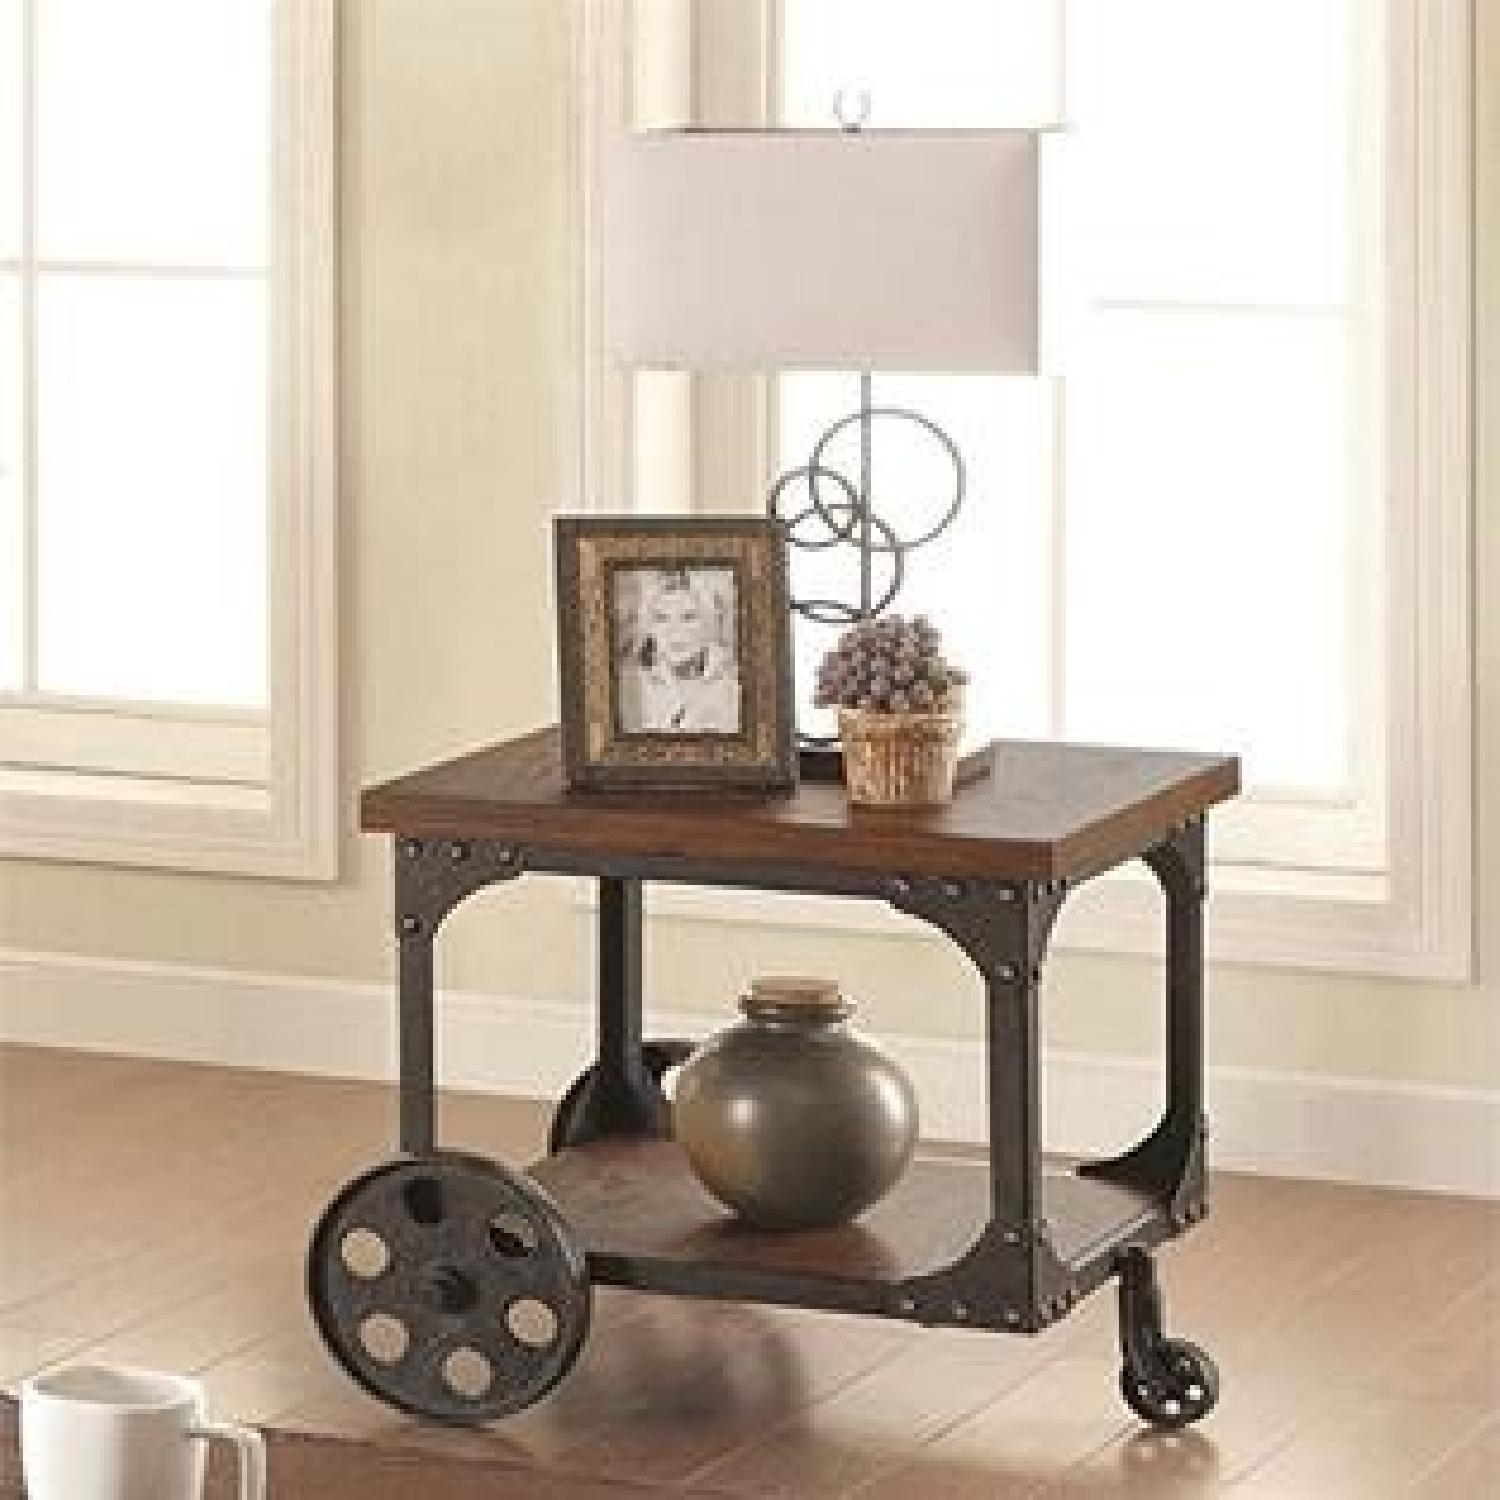 Rustic Brown End Table w/ Metal Wheels - image-1